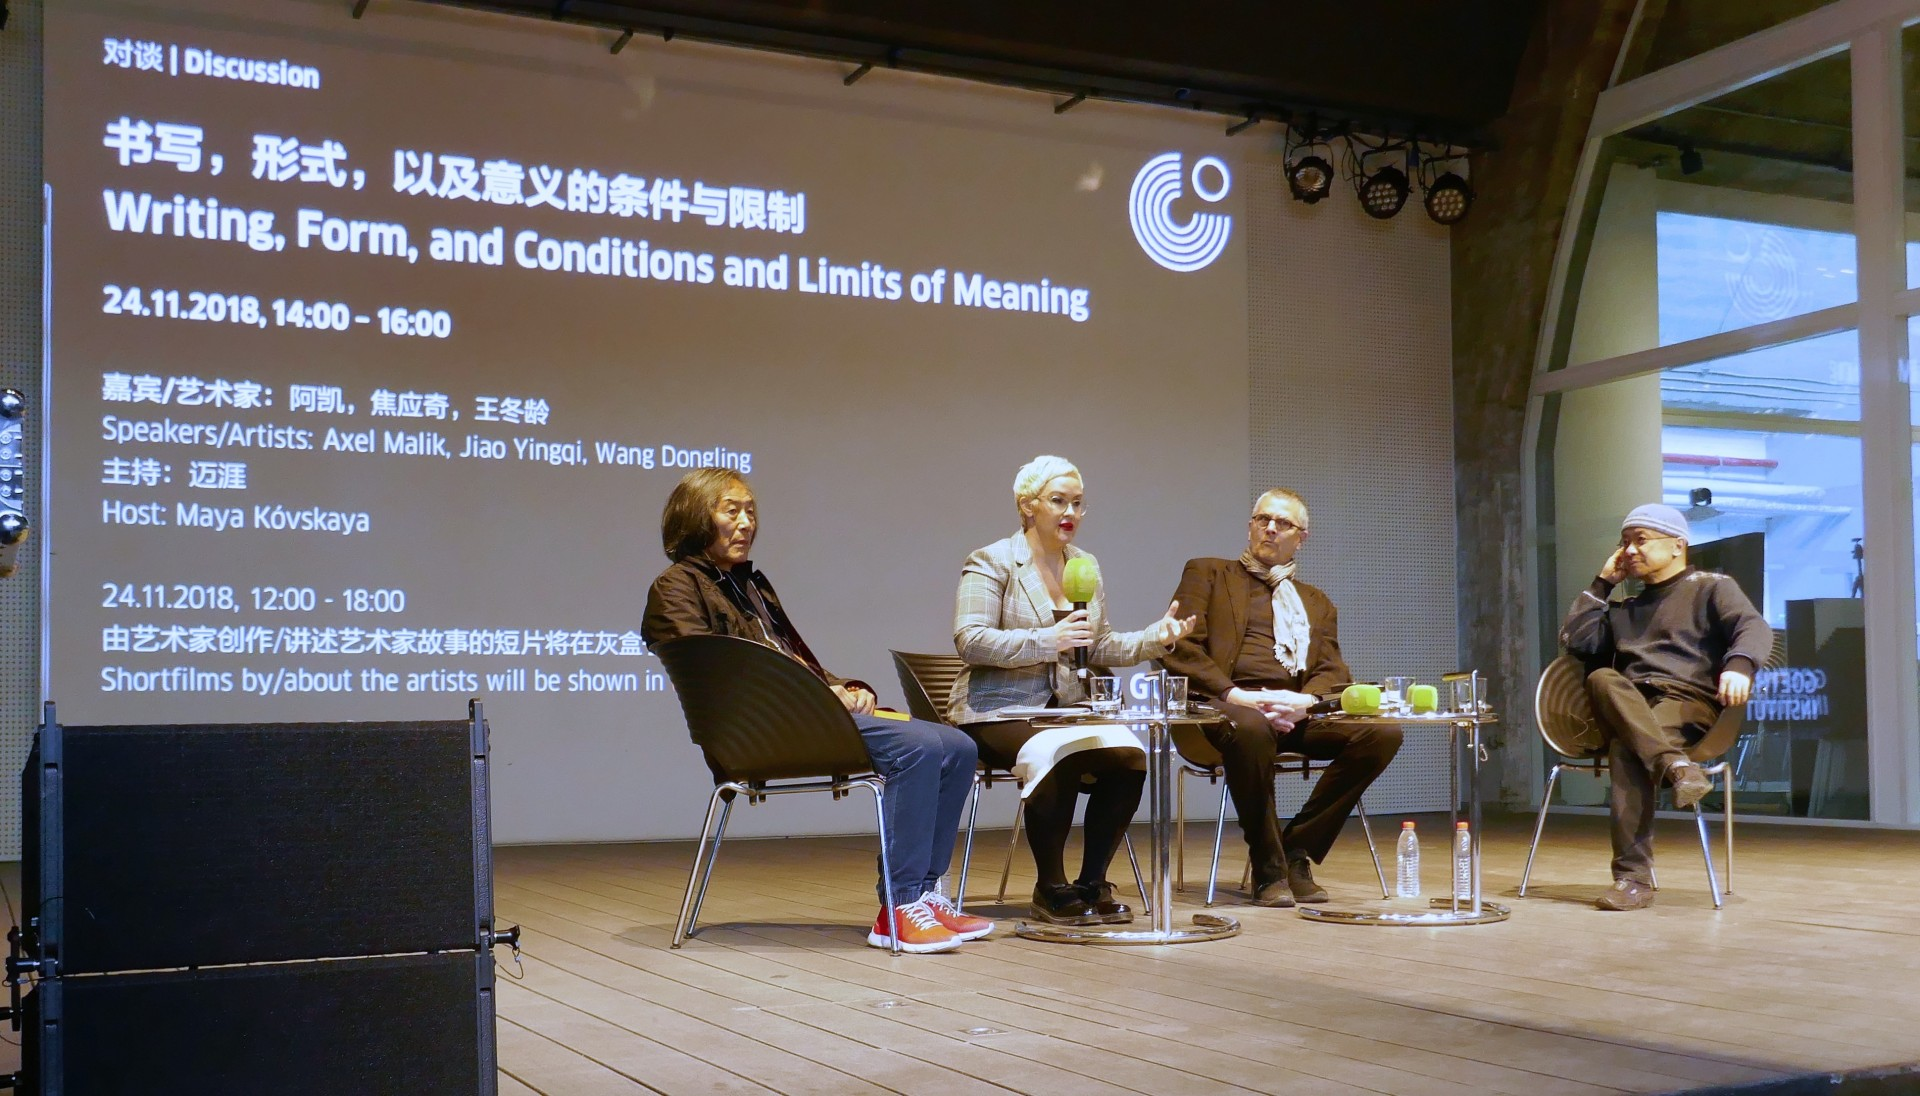 "Panel discussion ""Writing, Form, and Conditions and Limits of Meaning"", 24/11/2018, photo: Andreas Wistoff"